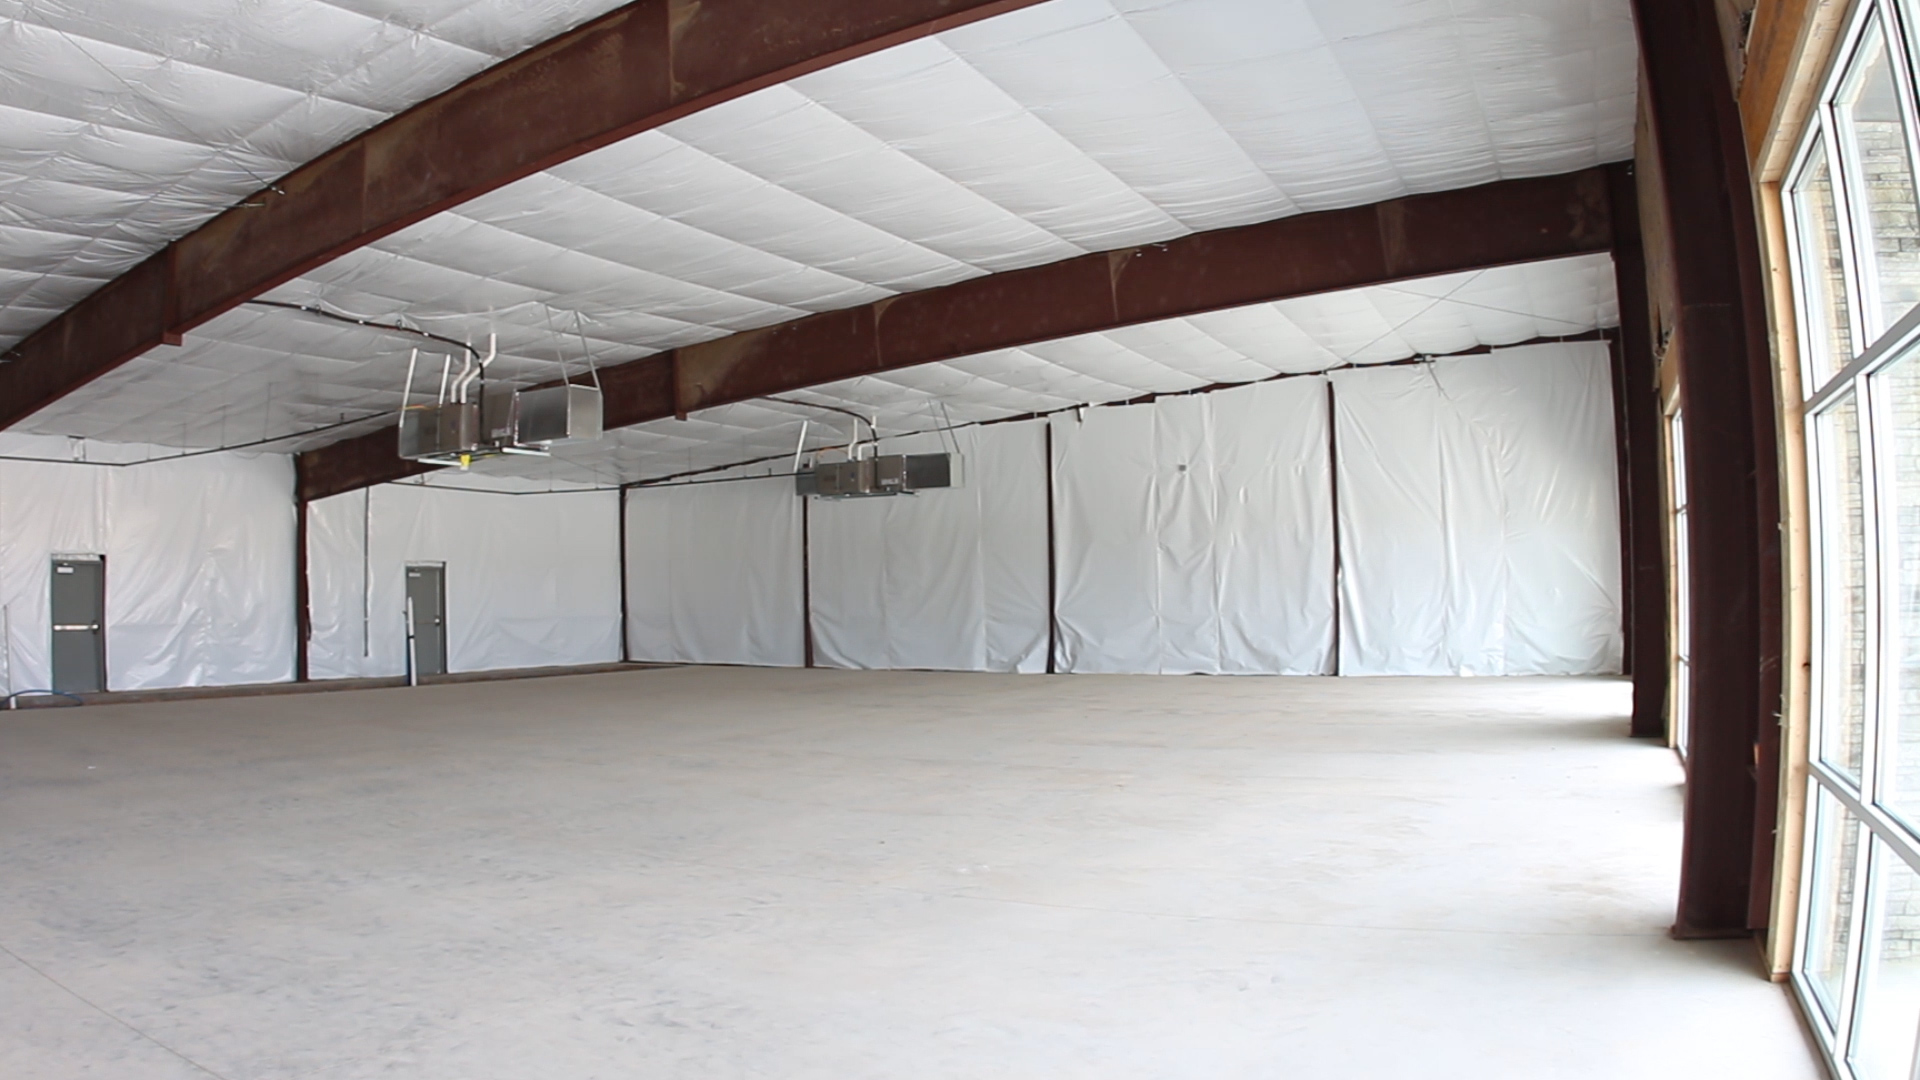 inside morgan myers available space with exposed beams